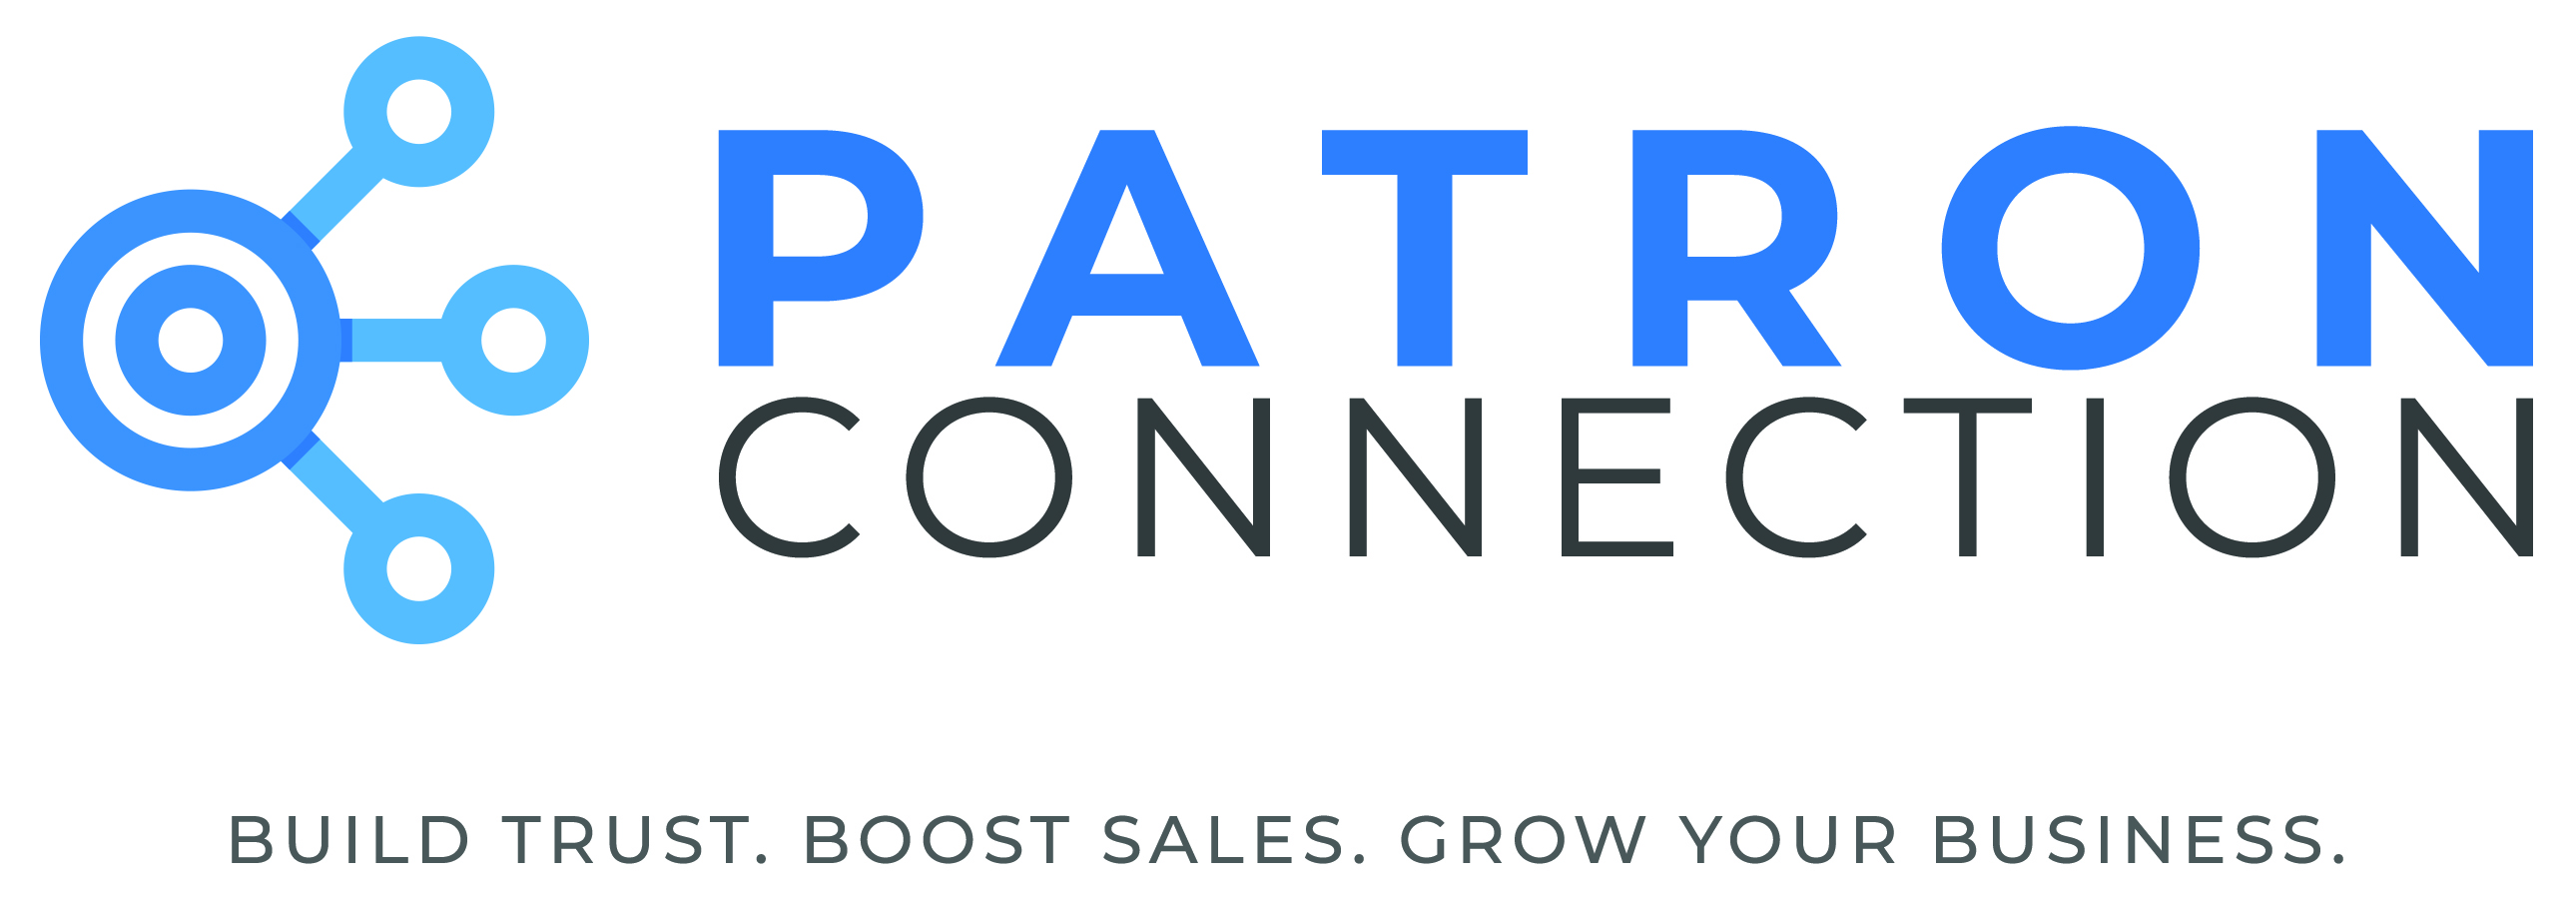 Introducing Patron Connection: the Online Review Management Software that Gives Businesses an Edge